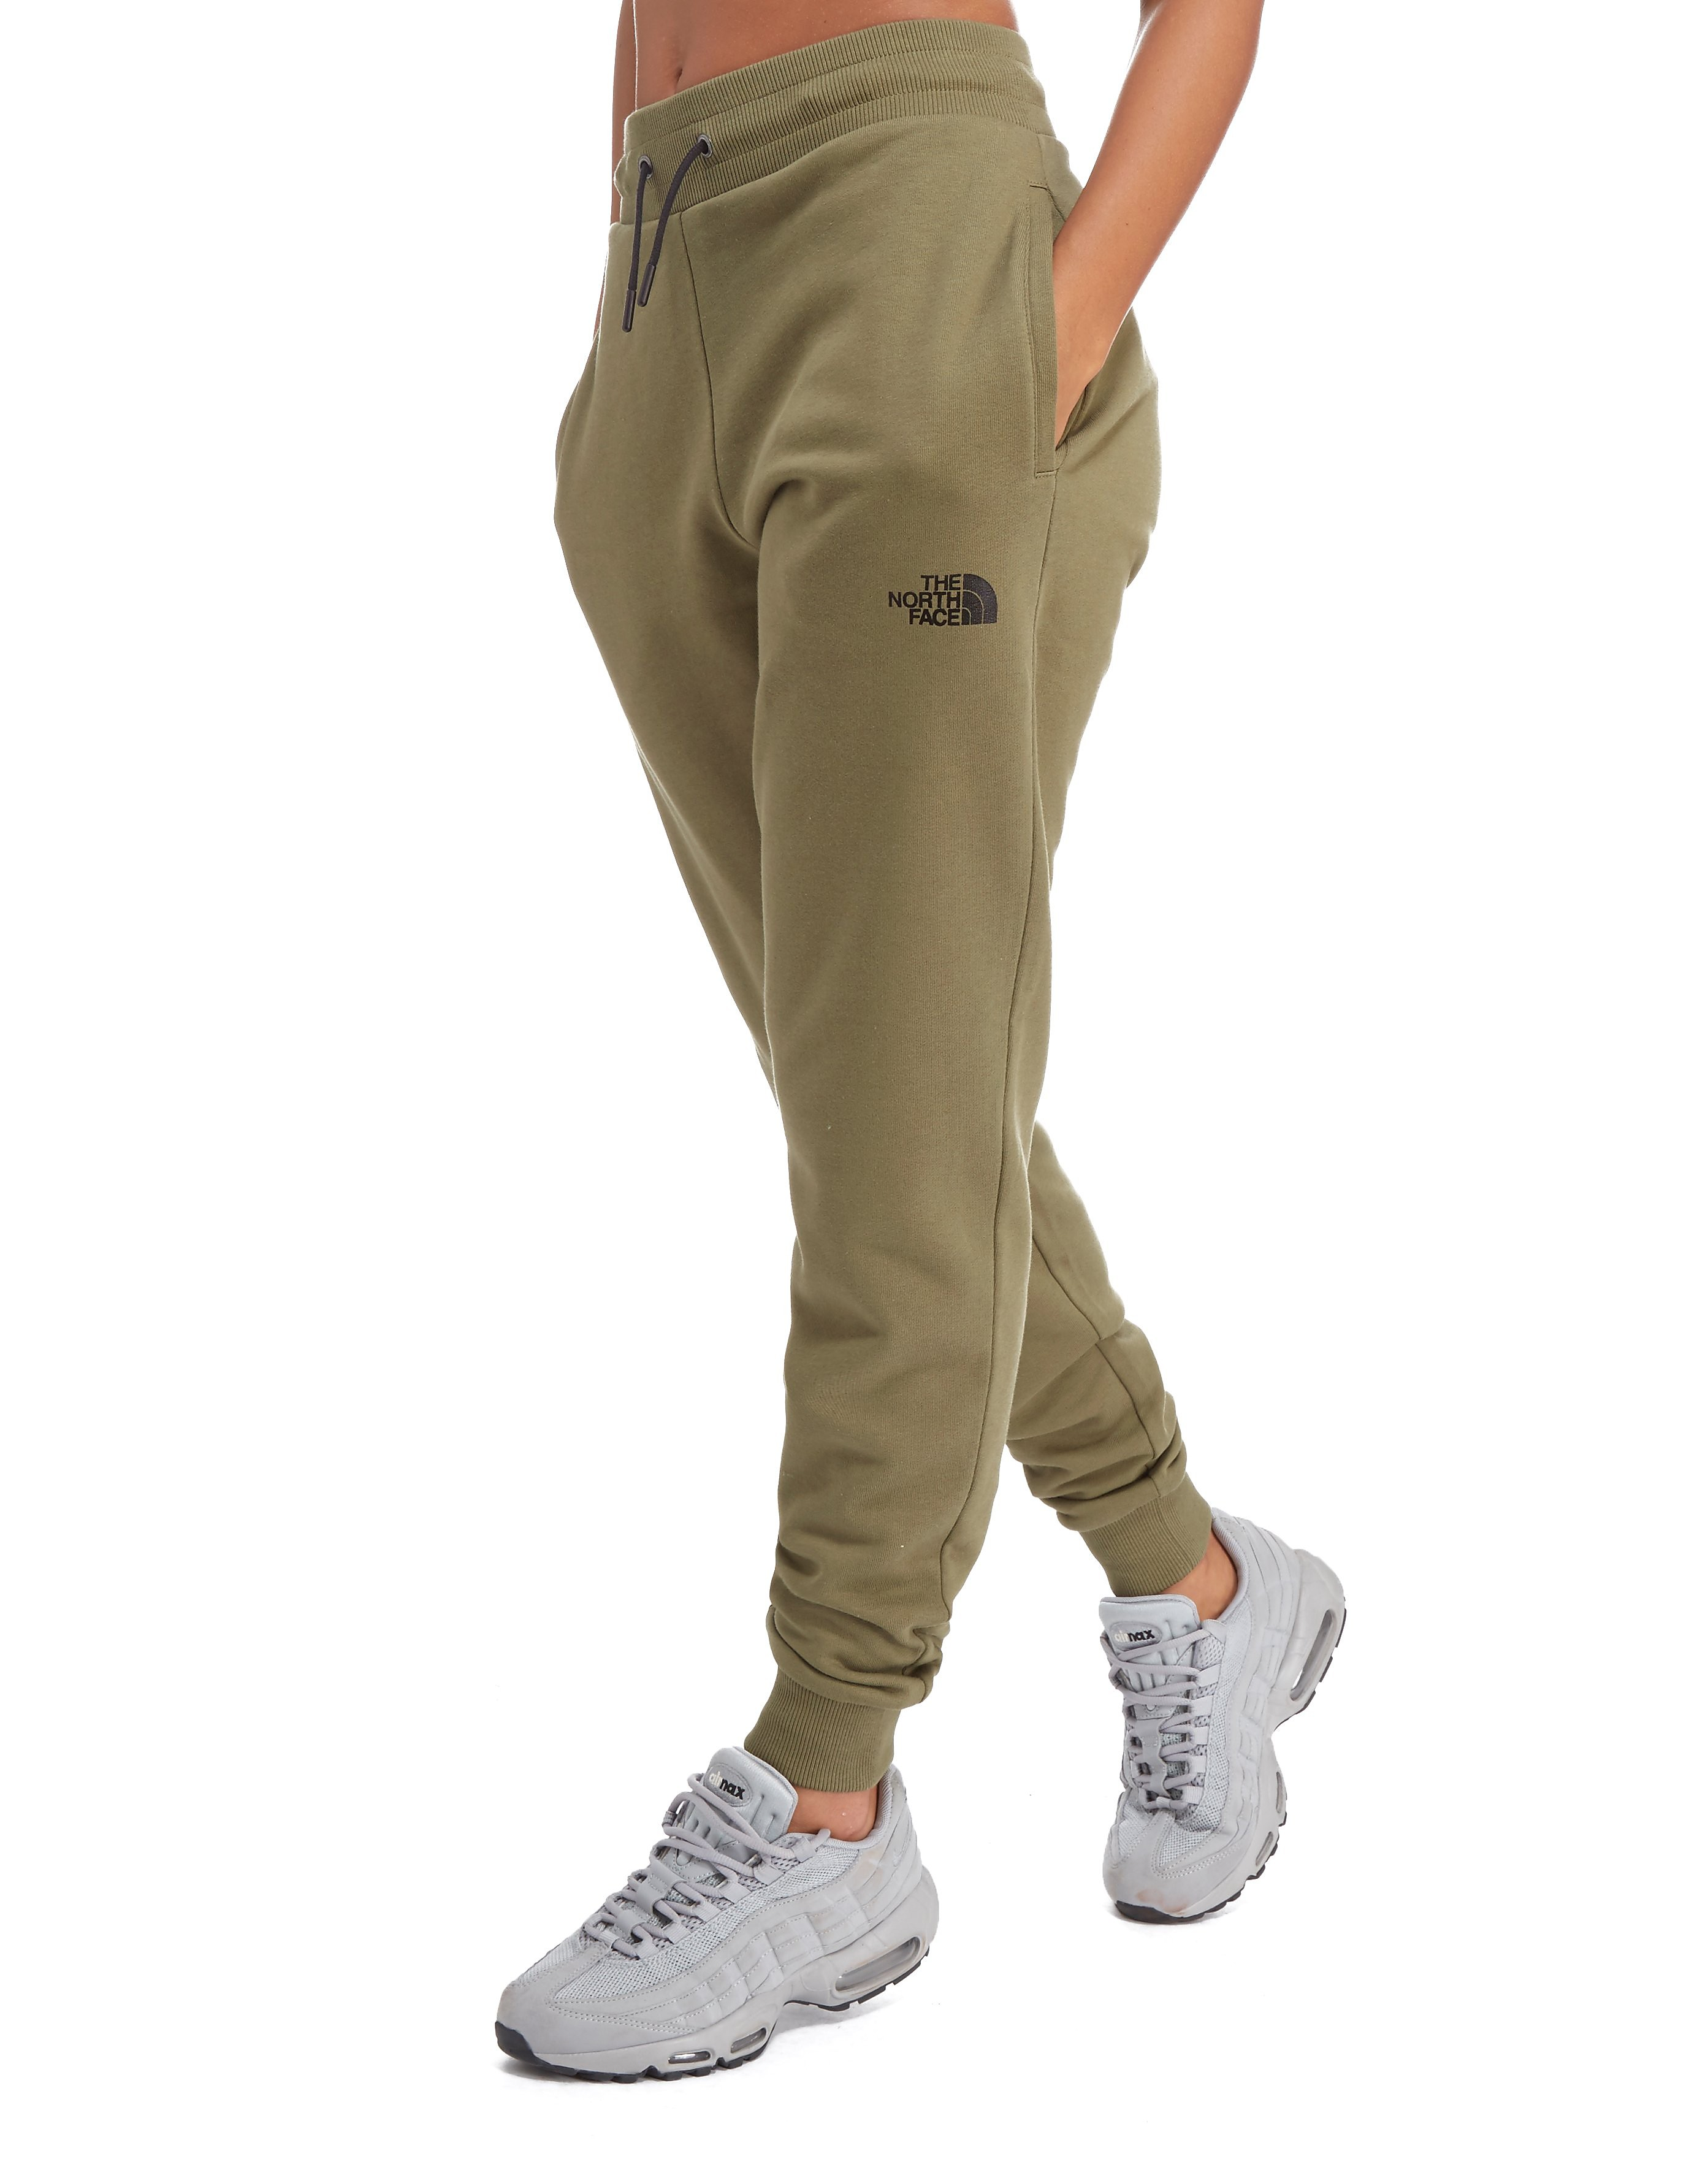 The North Face Panytalon  de survêtement Fleece Femme